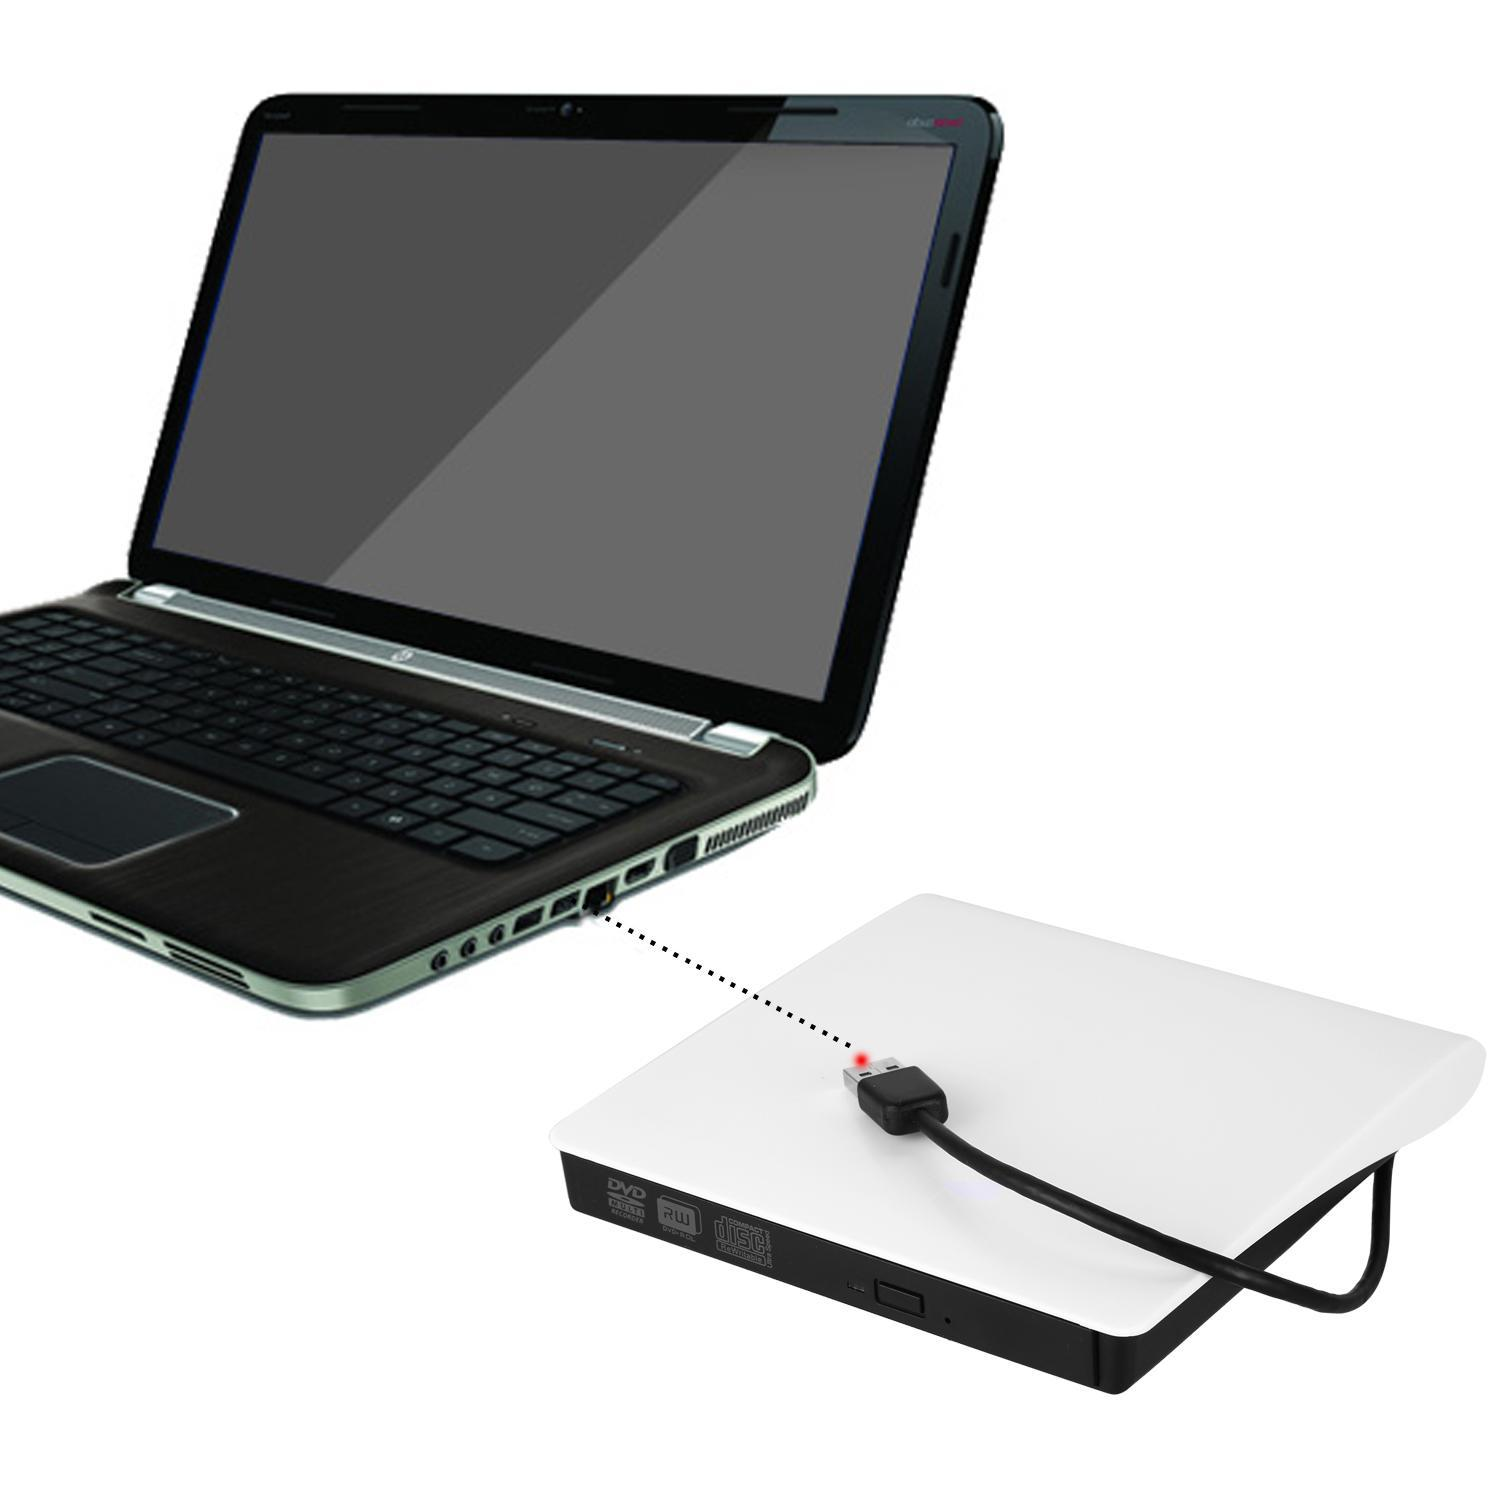 Slim External USB 3.0 DVD RW CD Writer Drive Burner Reader Player For Laptop PC WIMA